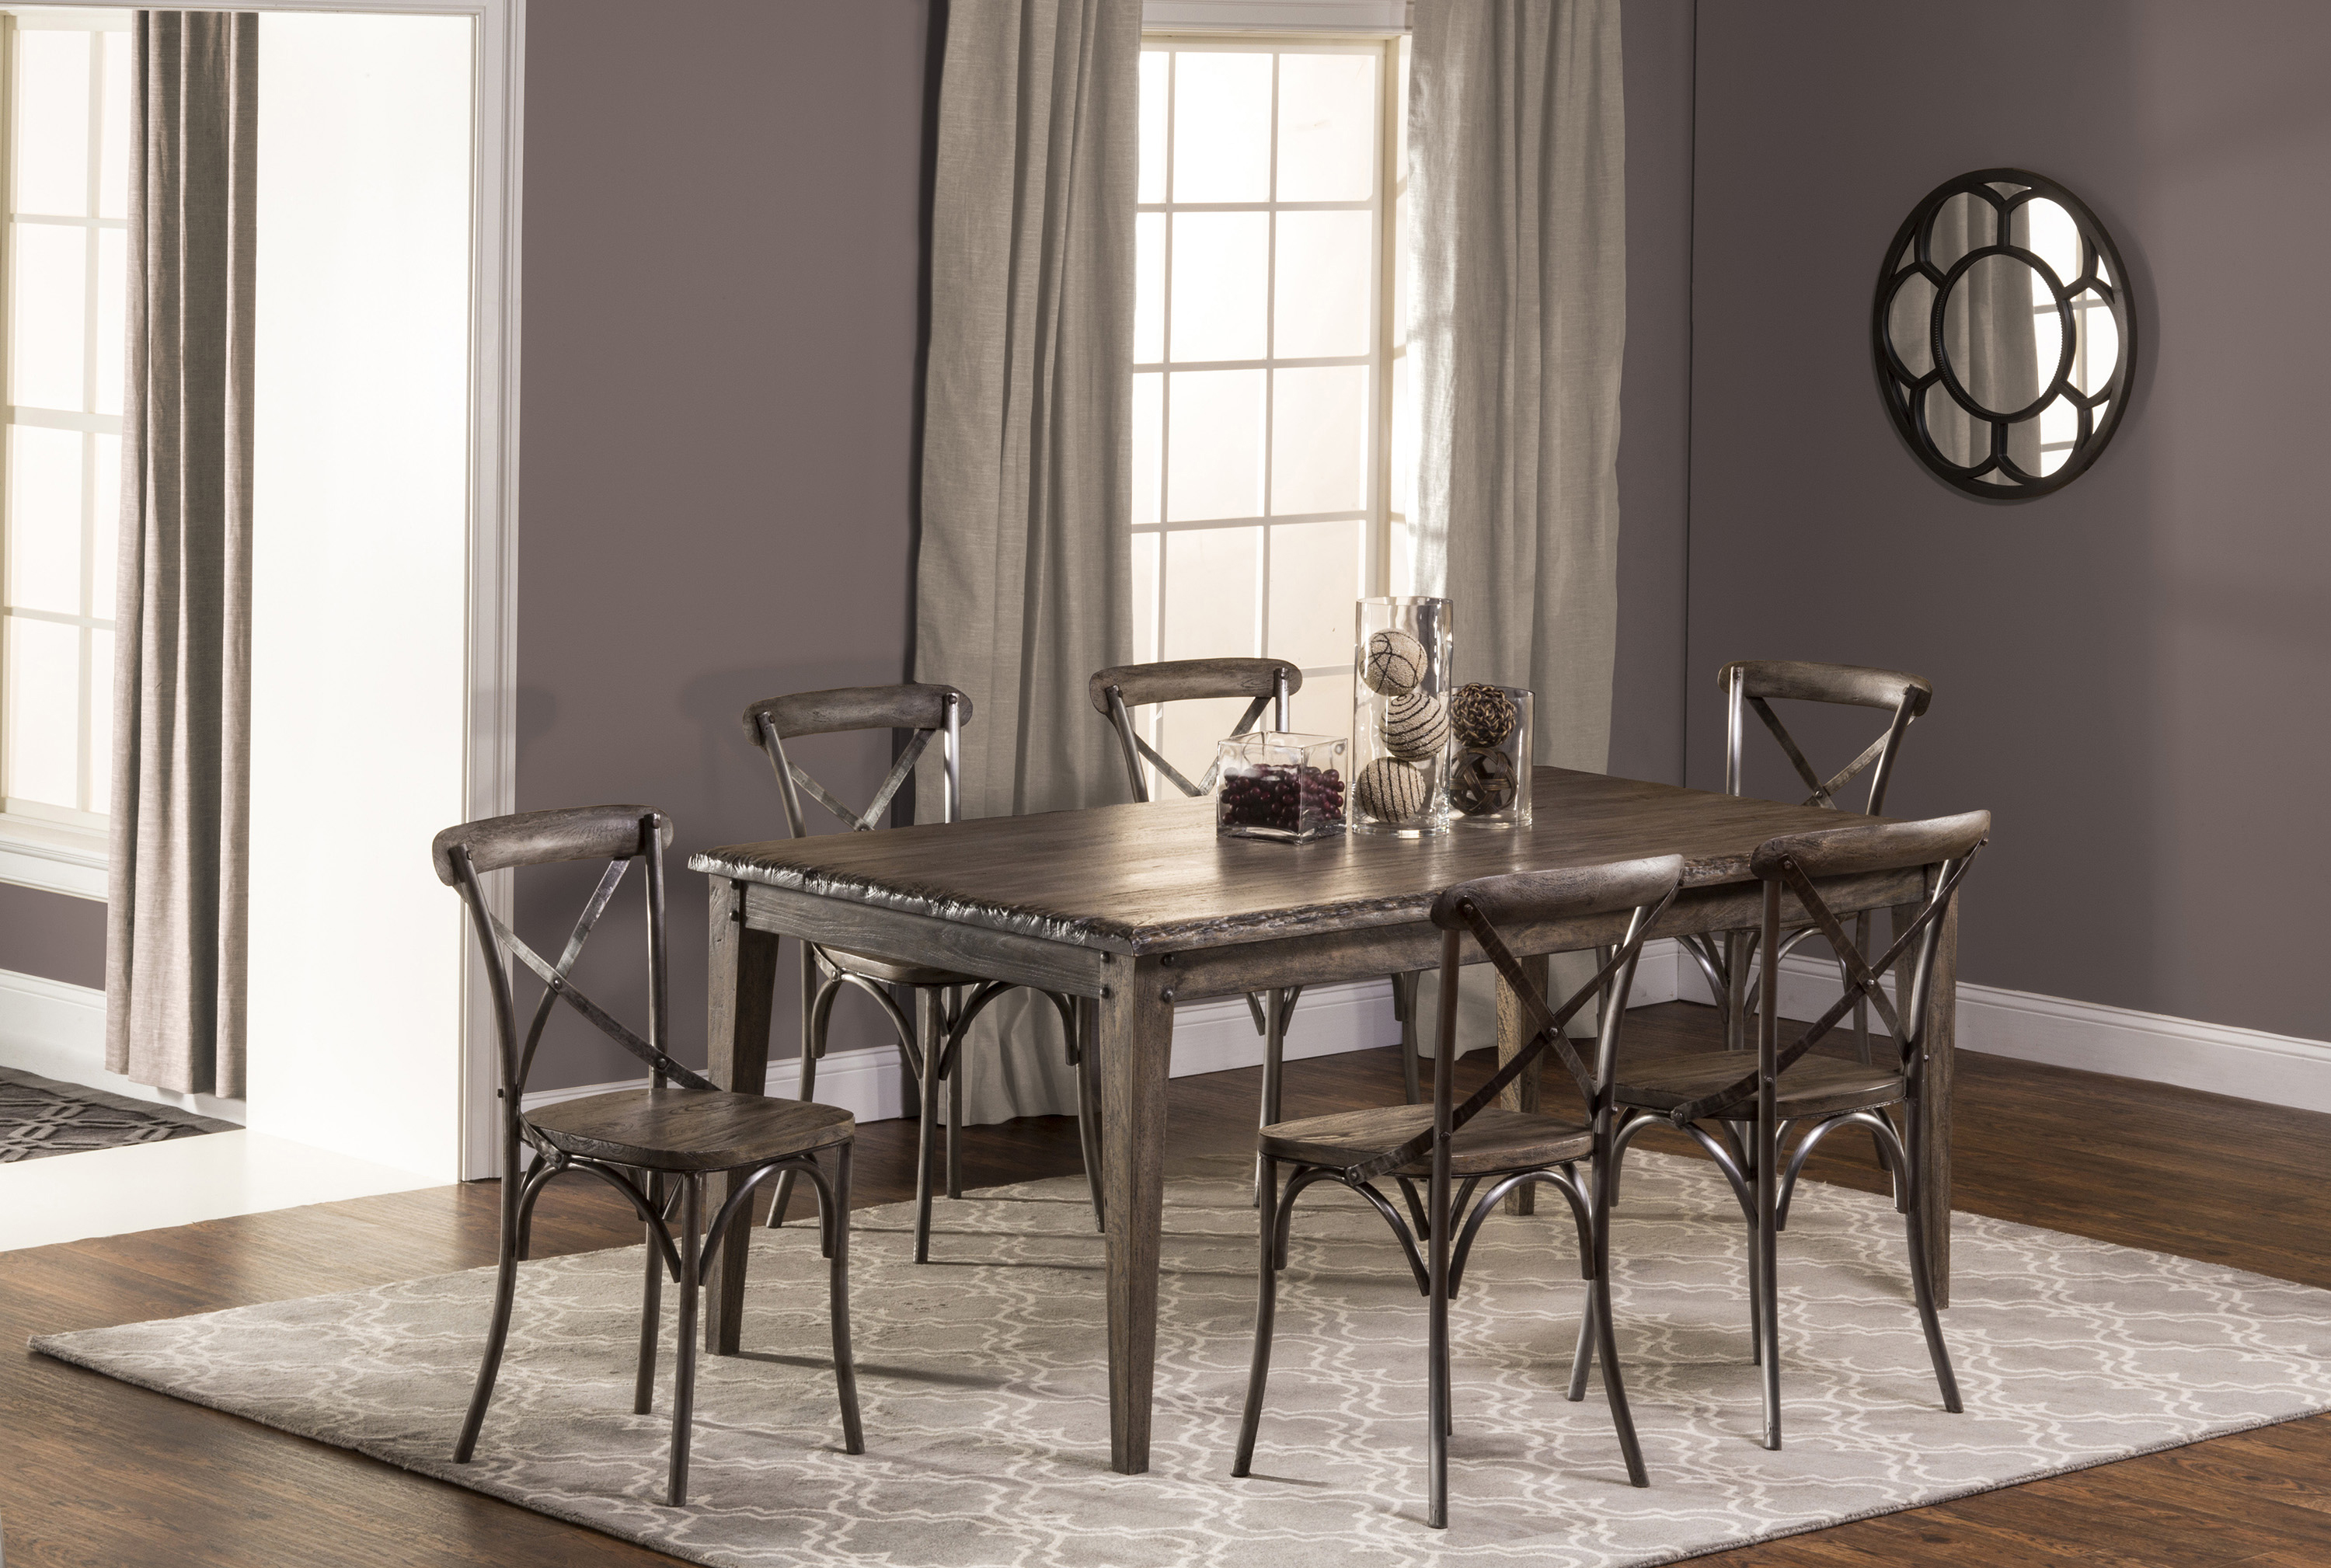 Hillsdale Lorient 7-Piece Rectangle Dining Set with X Back Din - Item Number: 5676DTRS7